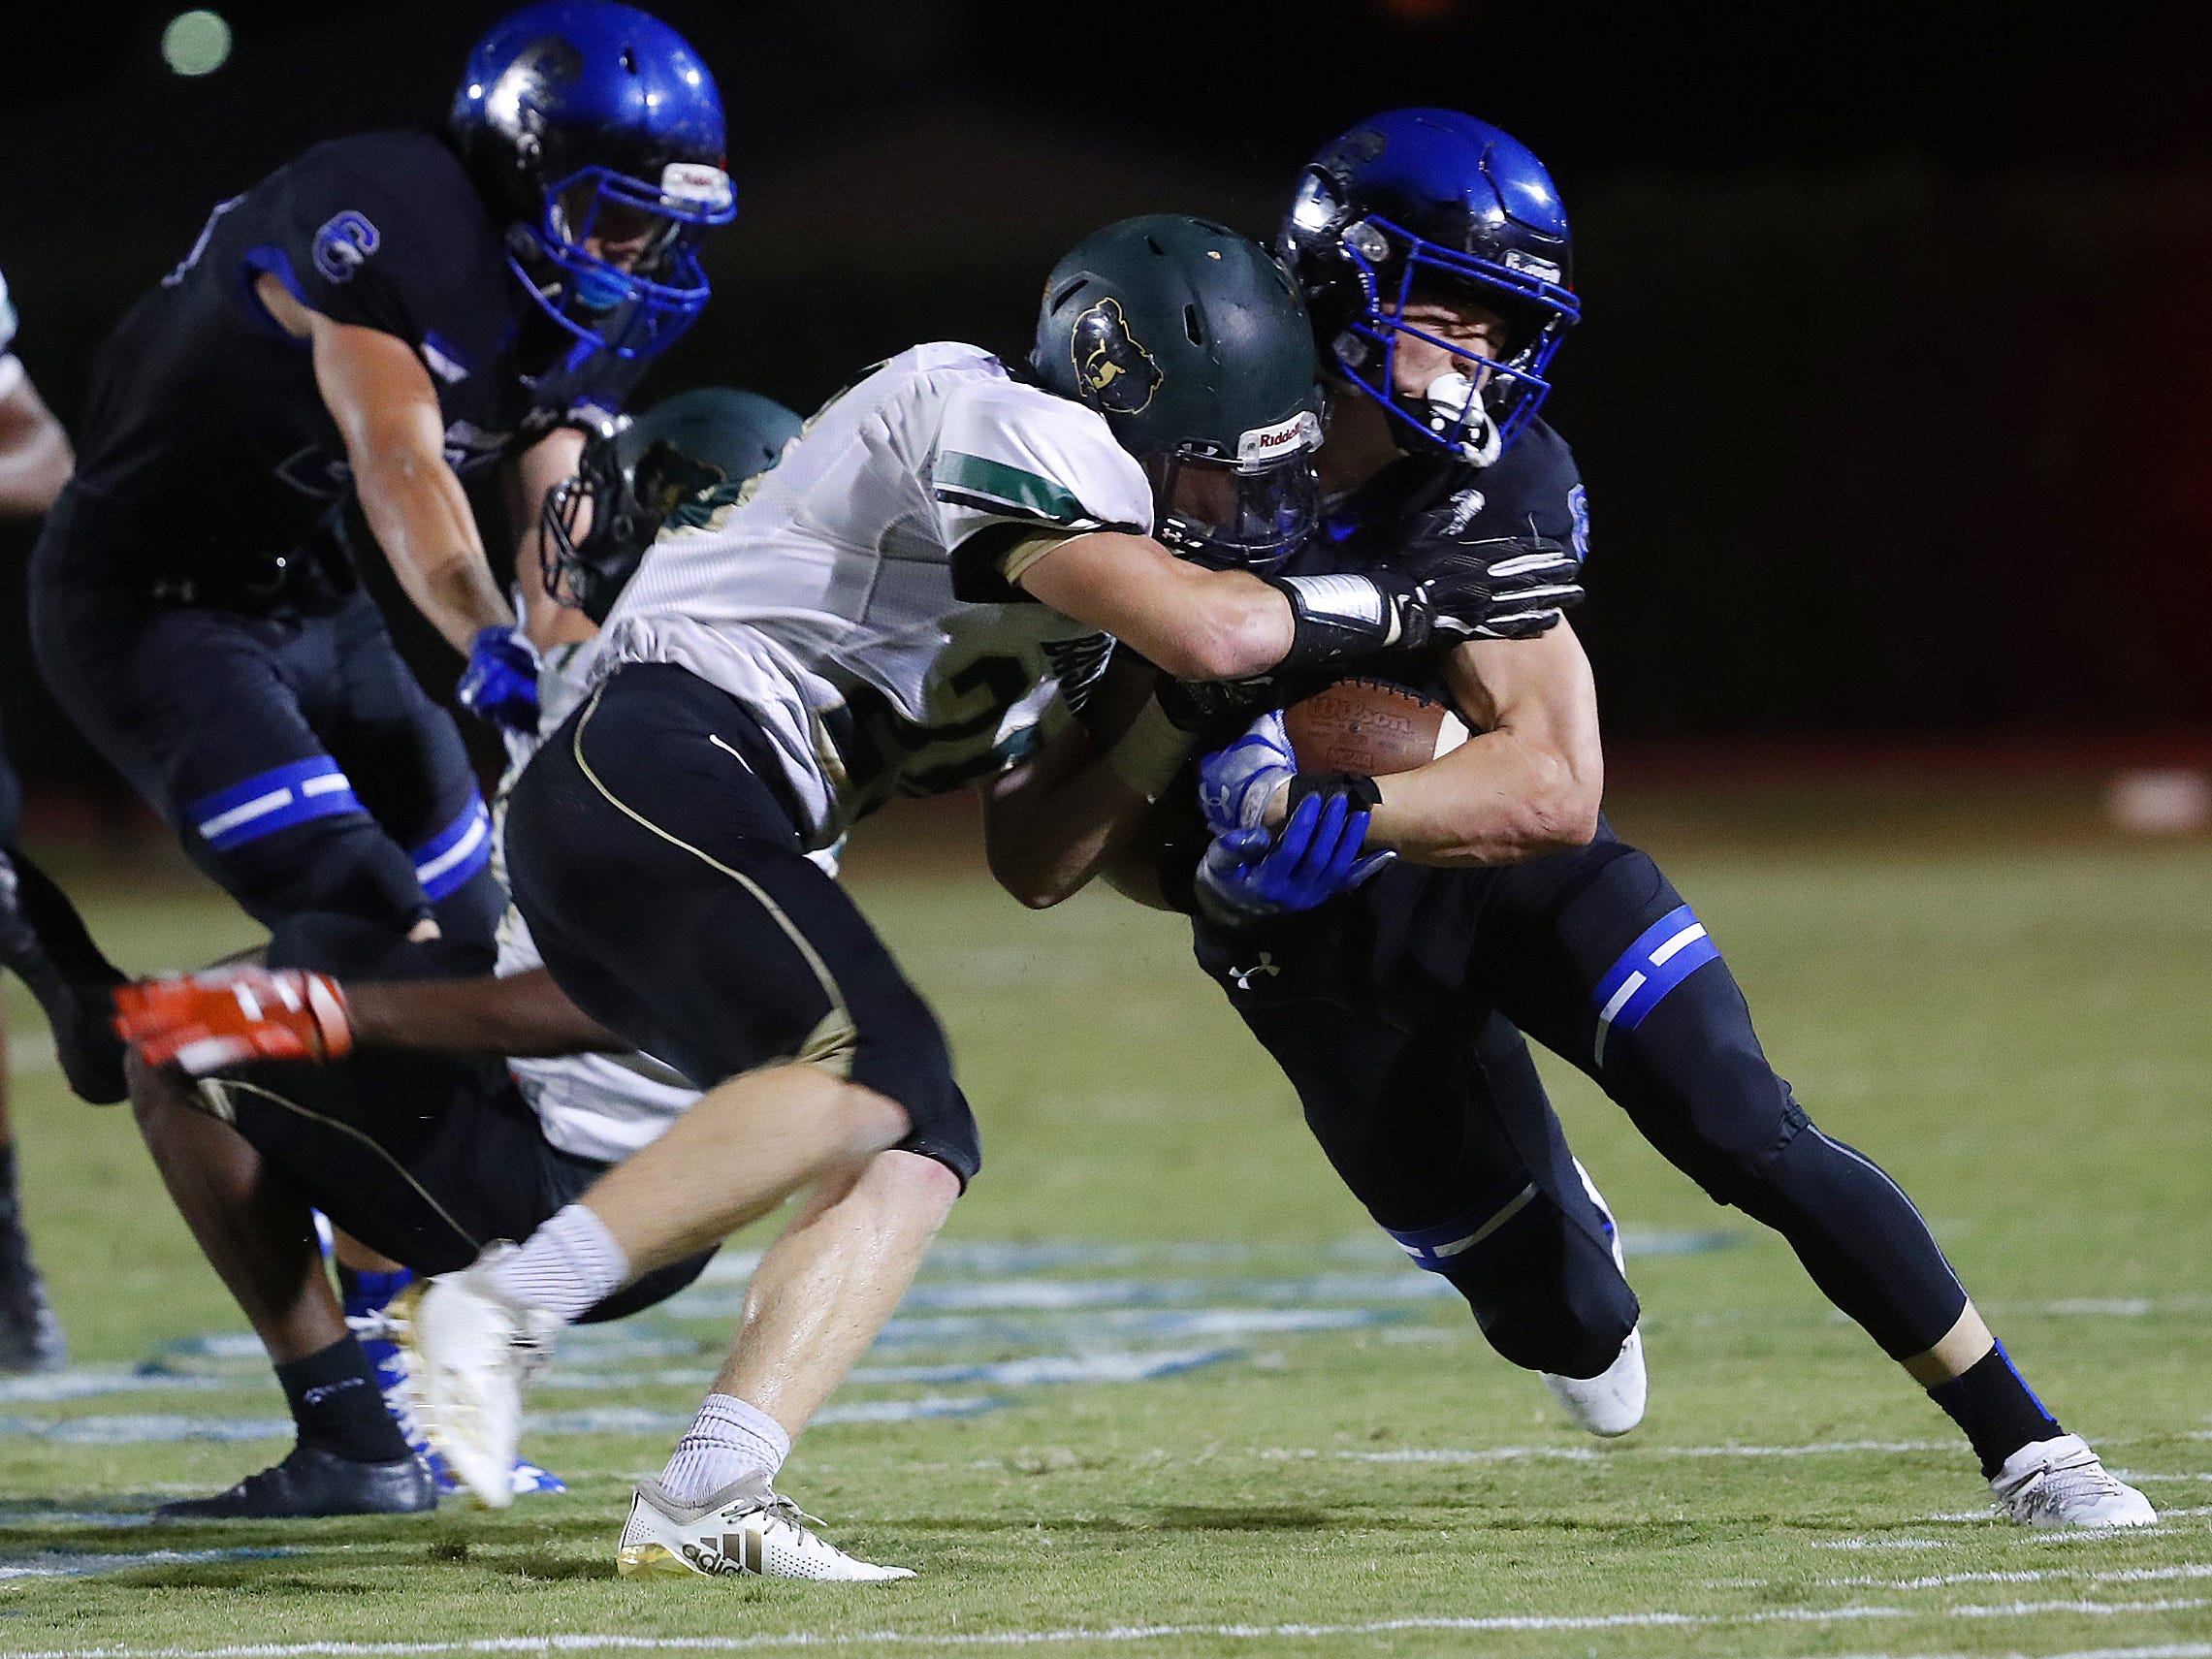 Basha's Dylan Quinn (25) tackles Chandler's Gunner Maldanado (13) at Chandler High School in Chandler, Ariz. on October 12, 2018.